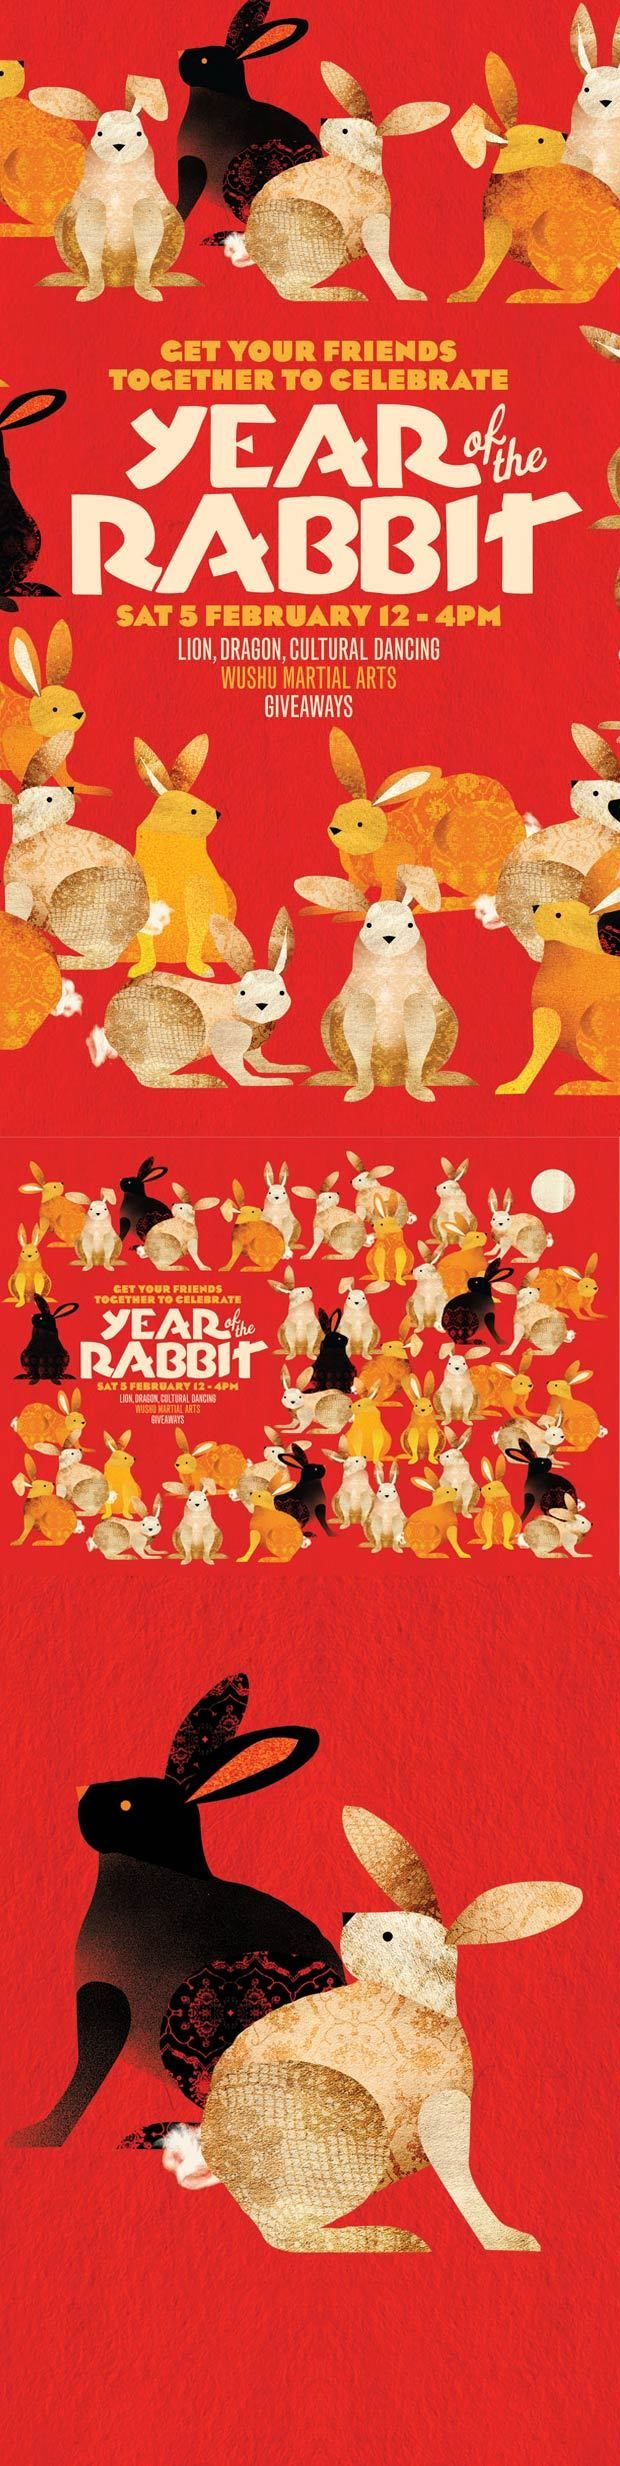 Chinese New Year Poster - WBYK